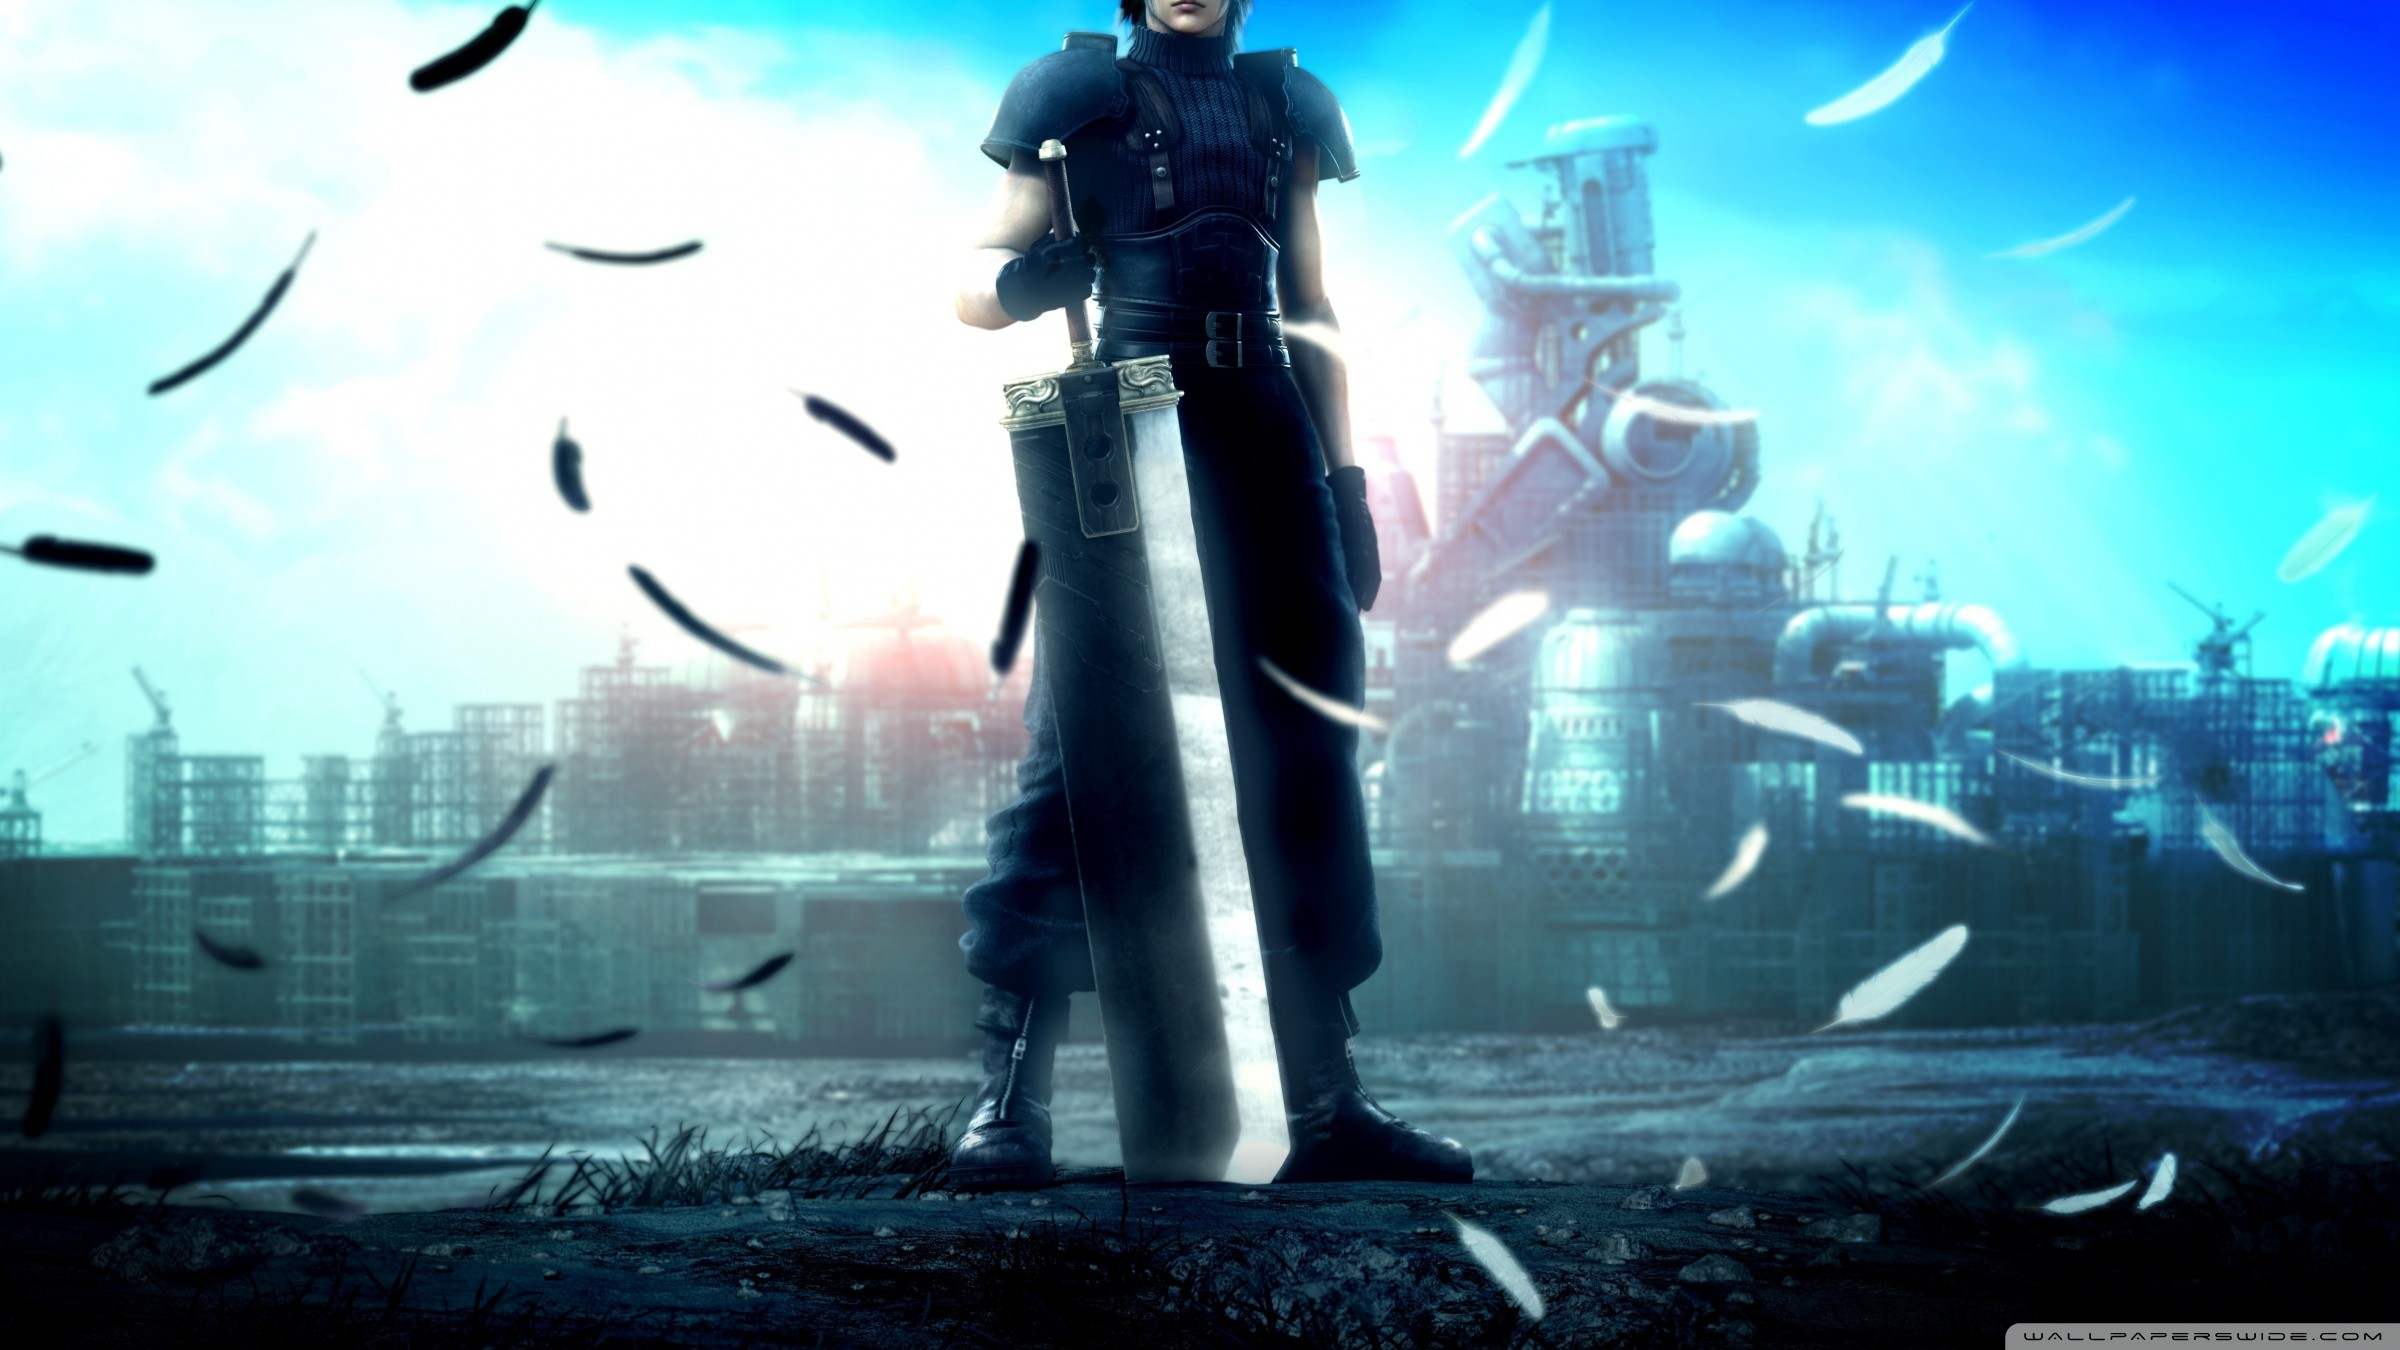 Final Fantasy 7 Hd Wallpaper Wallpapertag